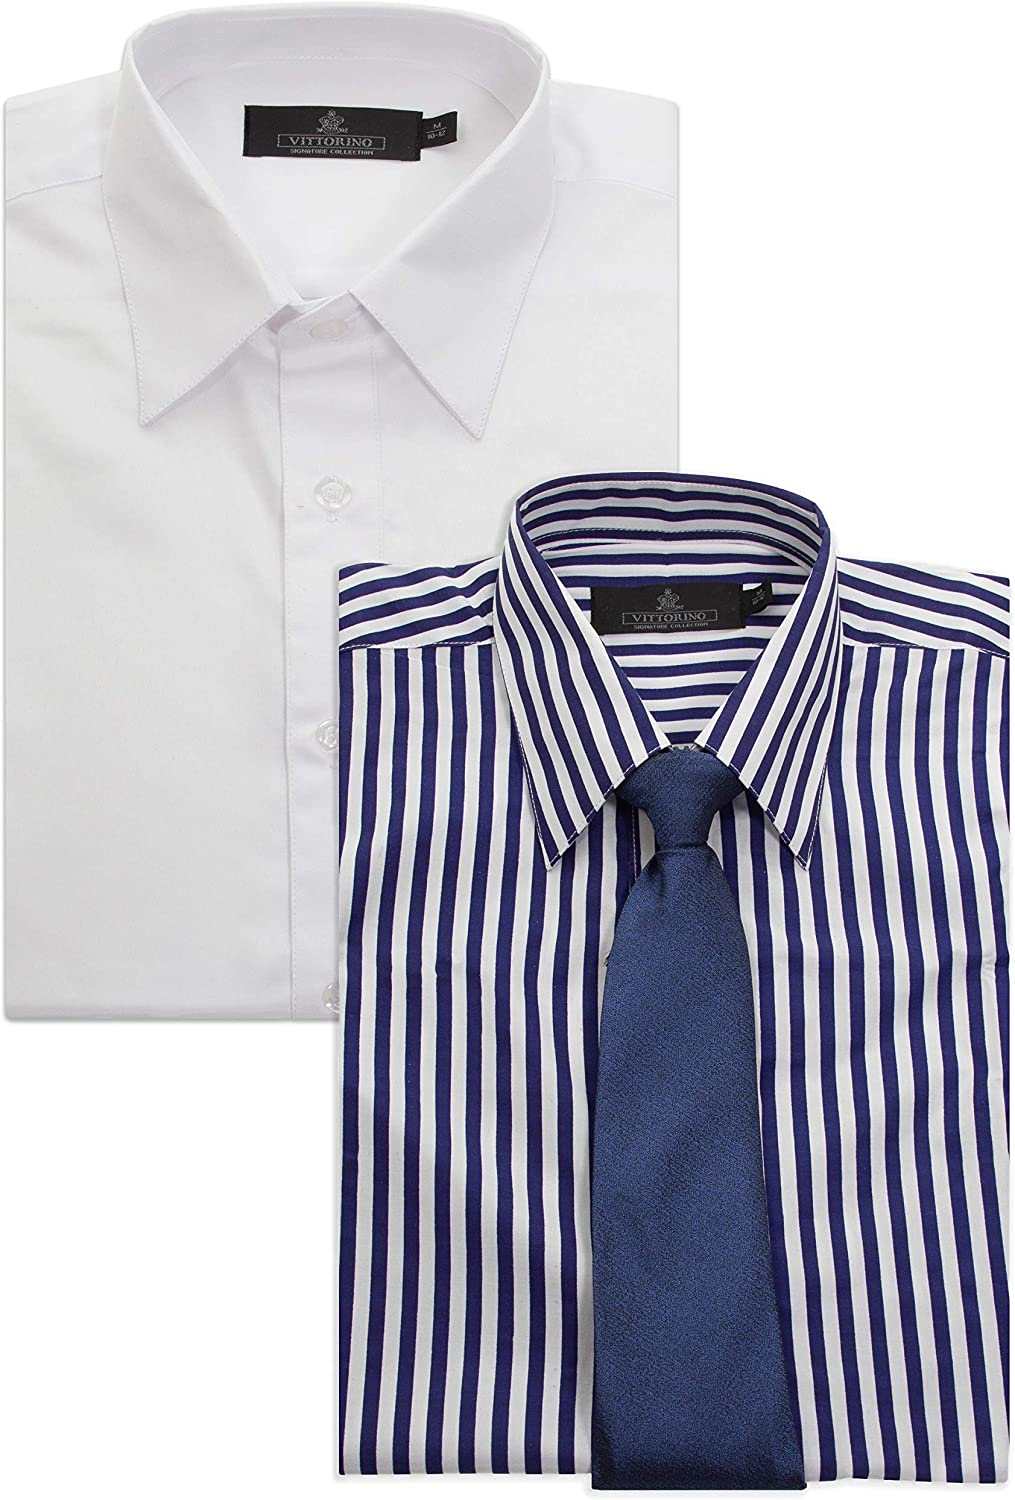 Vittorino Boys Value Pack 2 Long Sleeve Dress Shirts and Matching Tie Awesome Value!